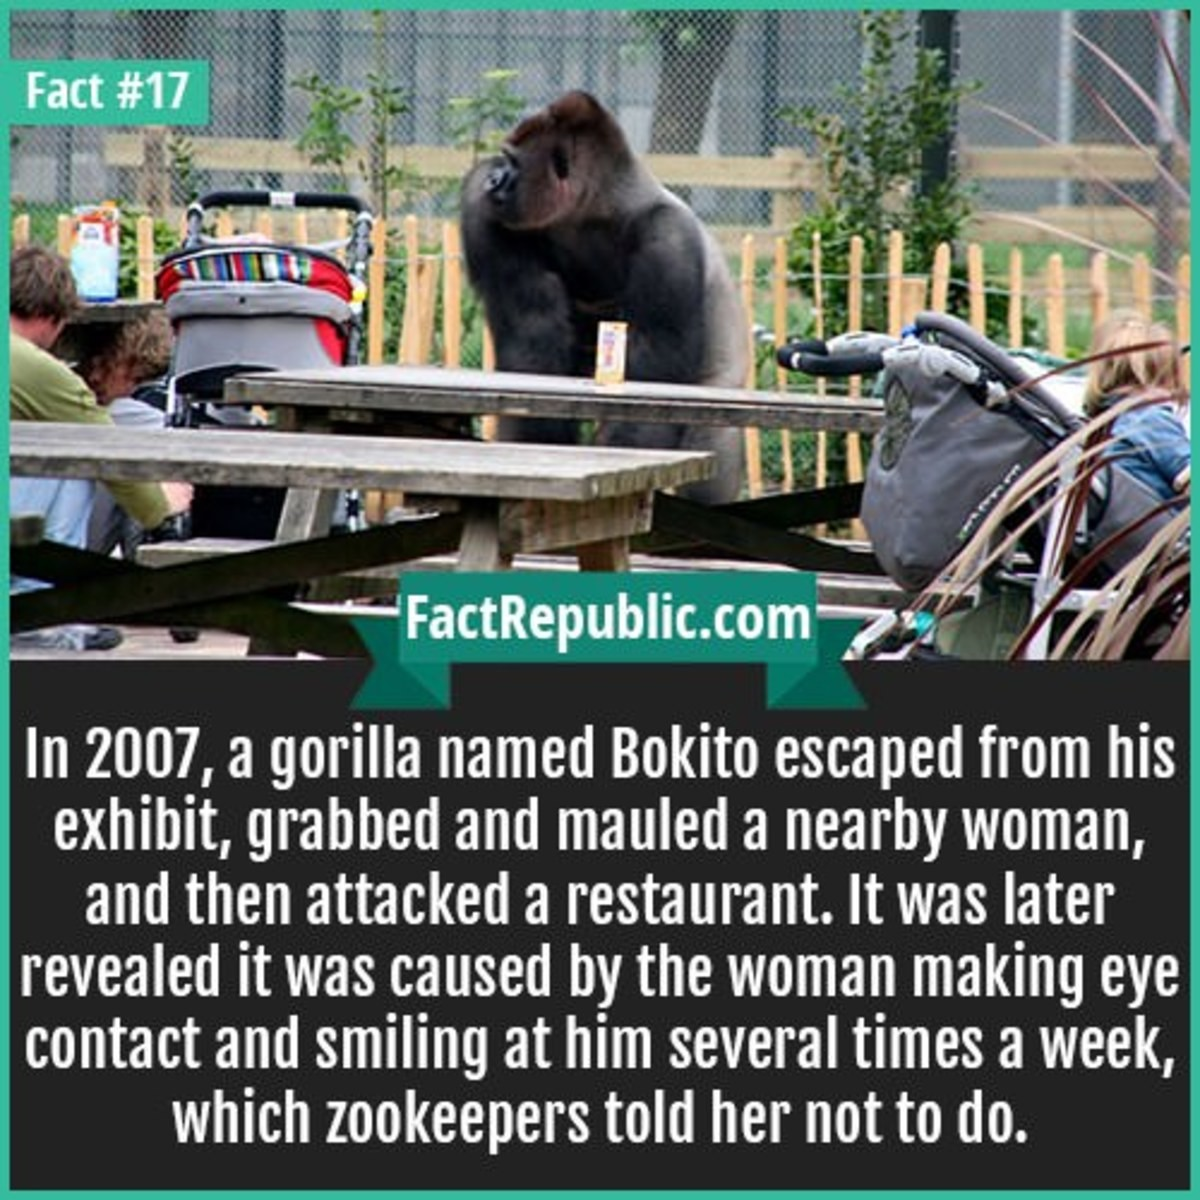 trunk Rabbit. .. >make a gorilla enclosure that can only hold calm, docile gorillas, not angry ones >tards tard >gorilla escapes >blame the tards for your enclosure